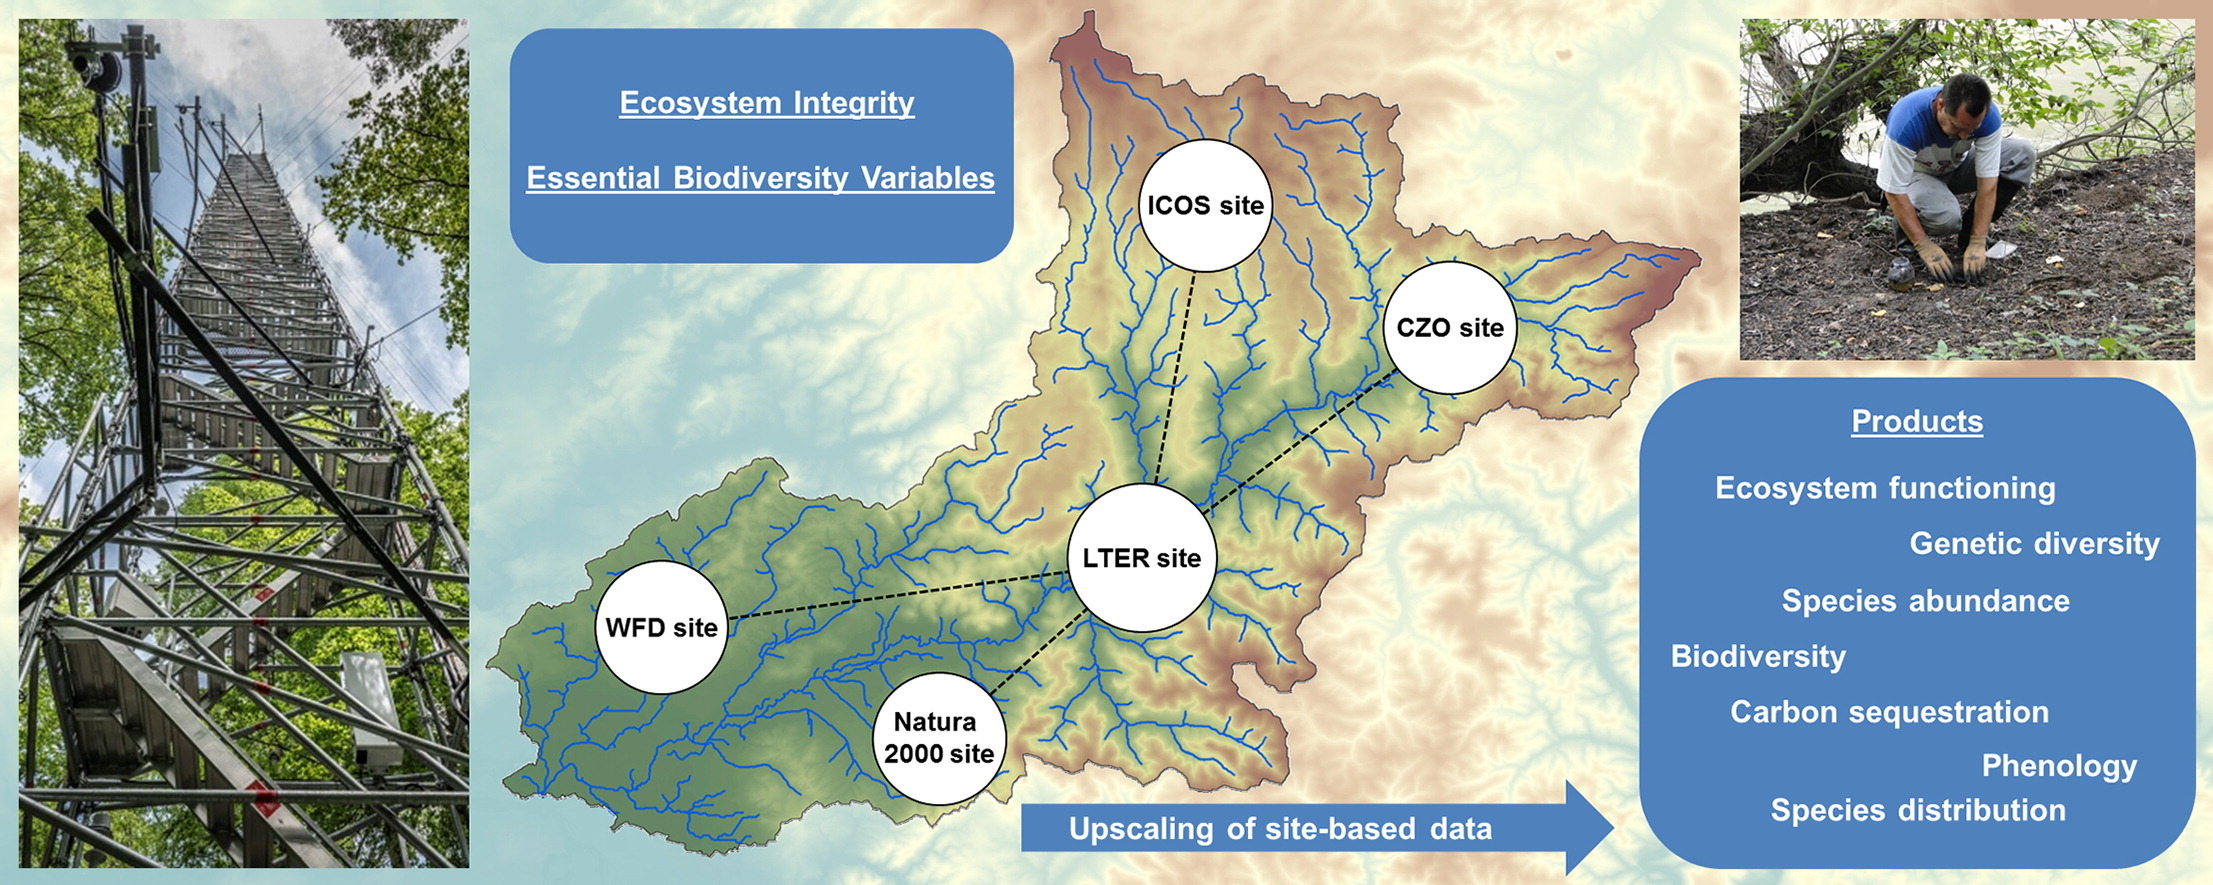 The next generation of site-based long-term ecological monitoring: Linking essential biodiversity variables and ecosystem integrity